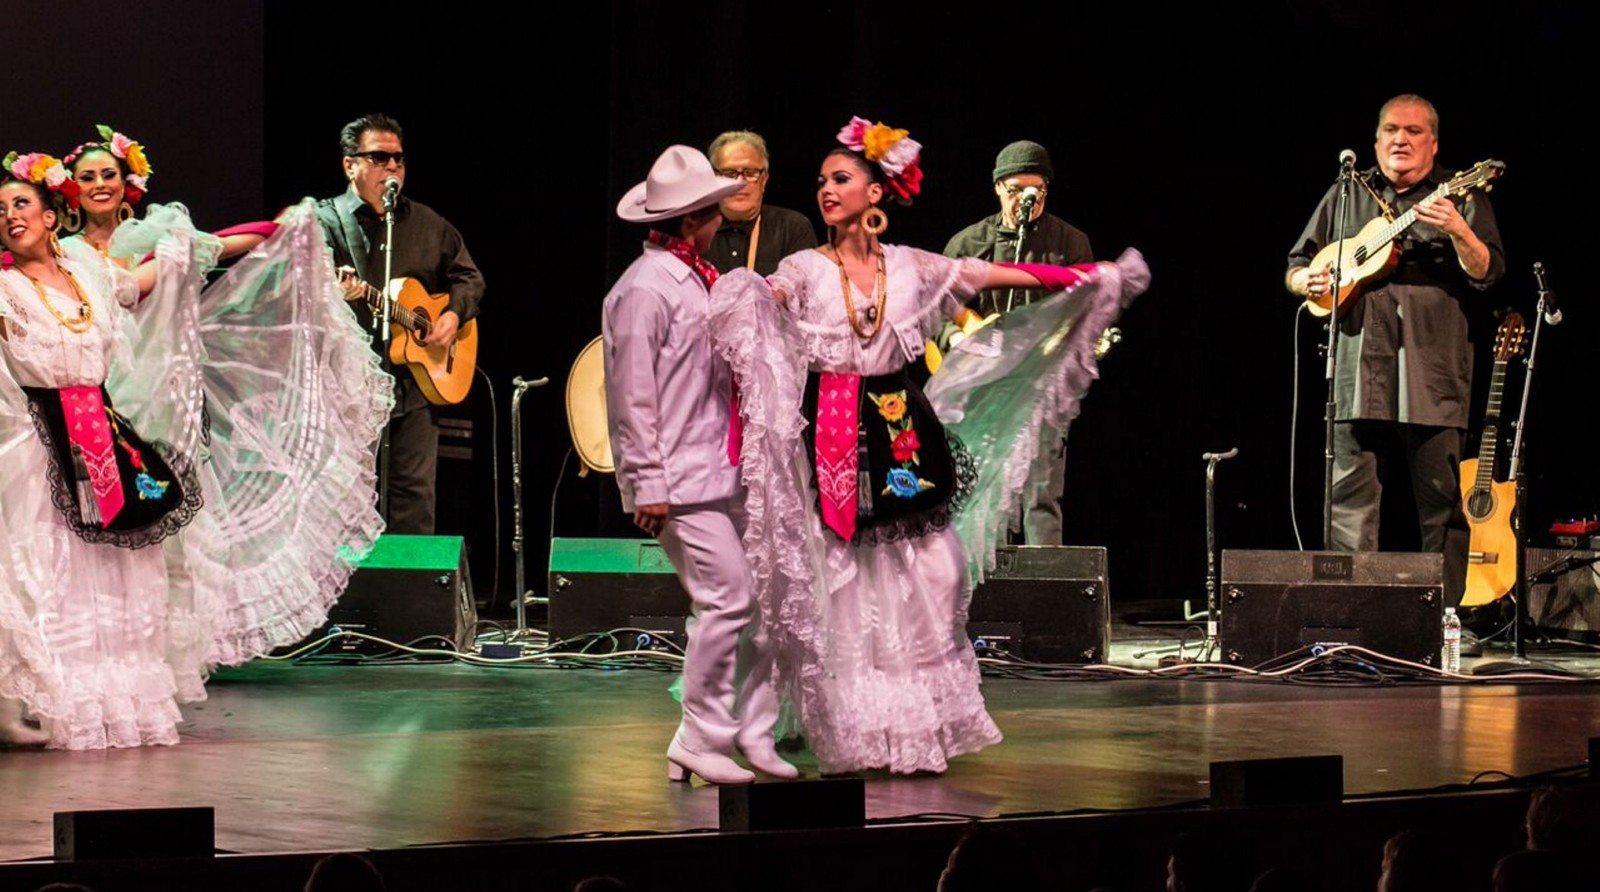 Los Lobos and Ballet Folkloric Mexicano performed at the University at Buffalo Center for the Arts.